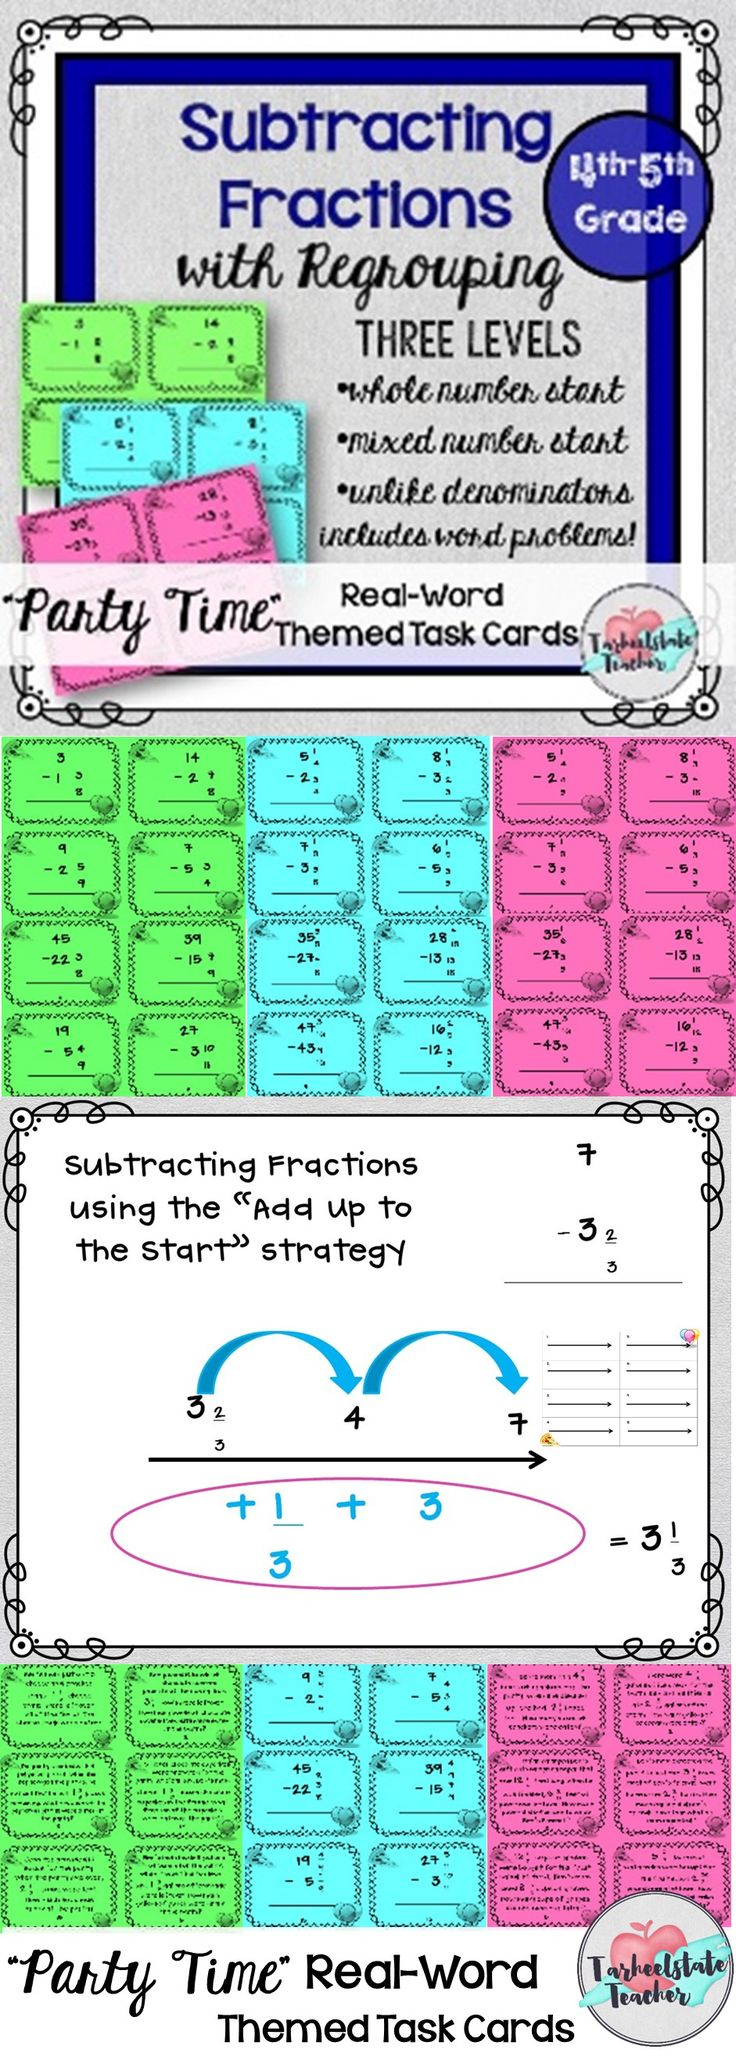 How To Subtract With Regrouping - mattawa